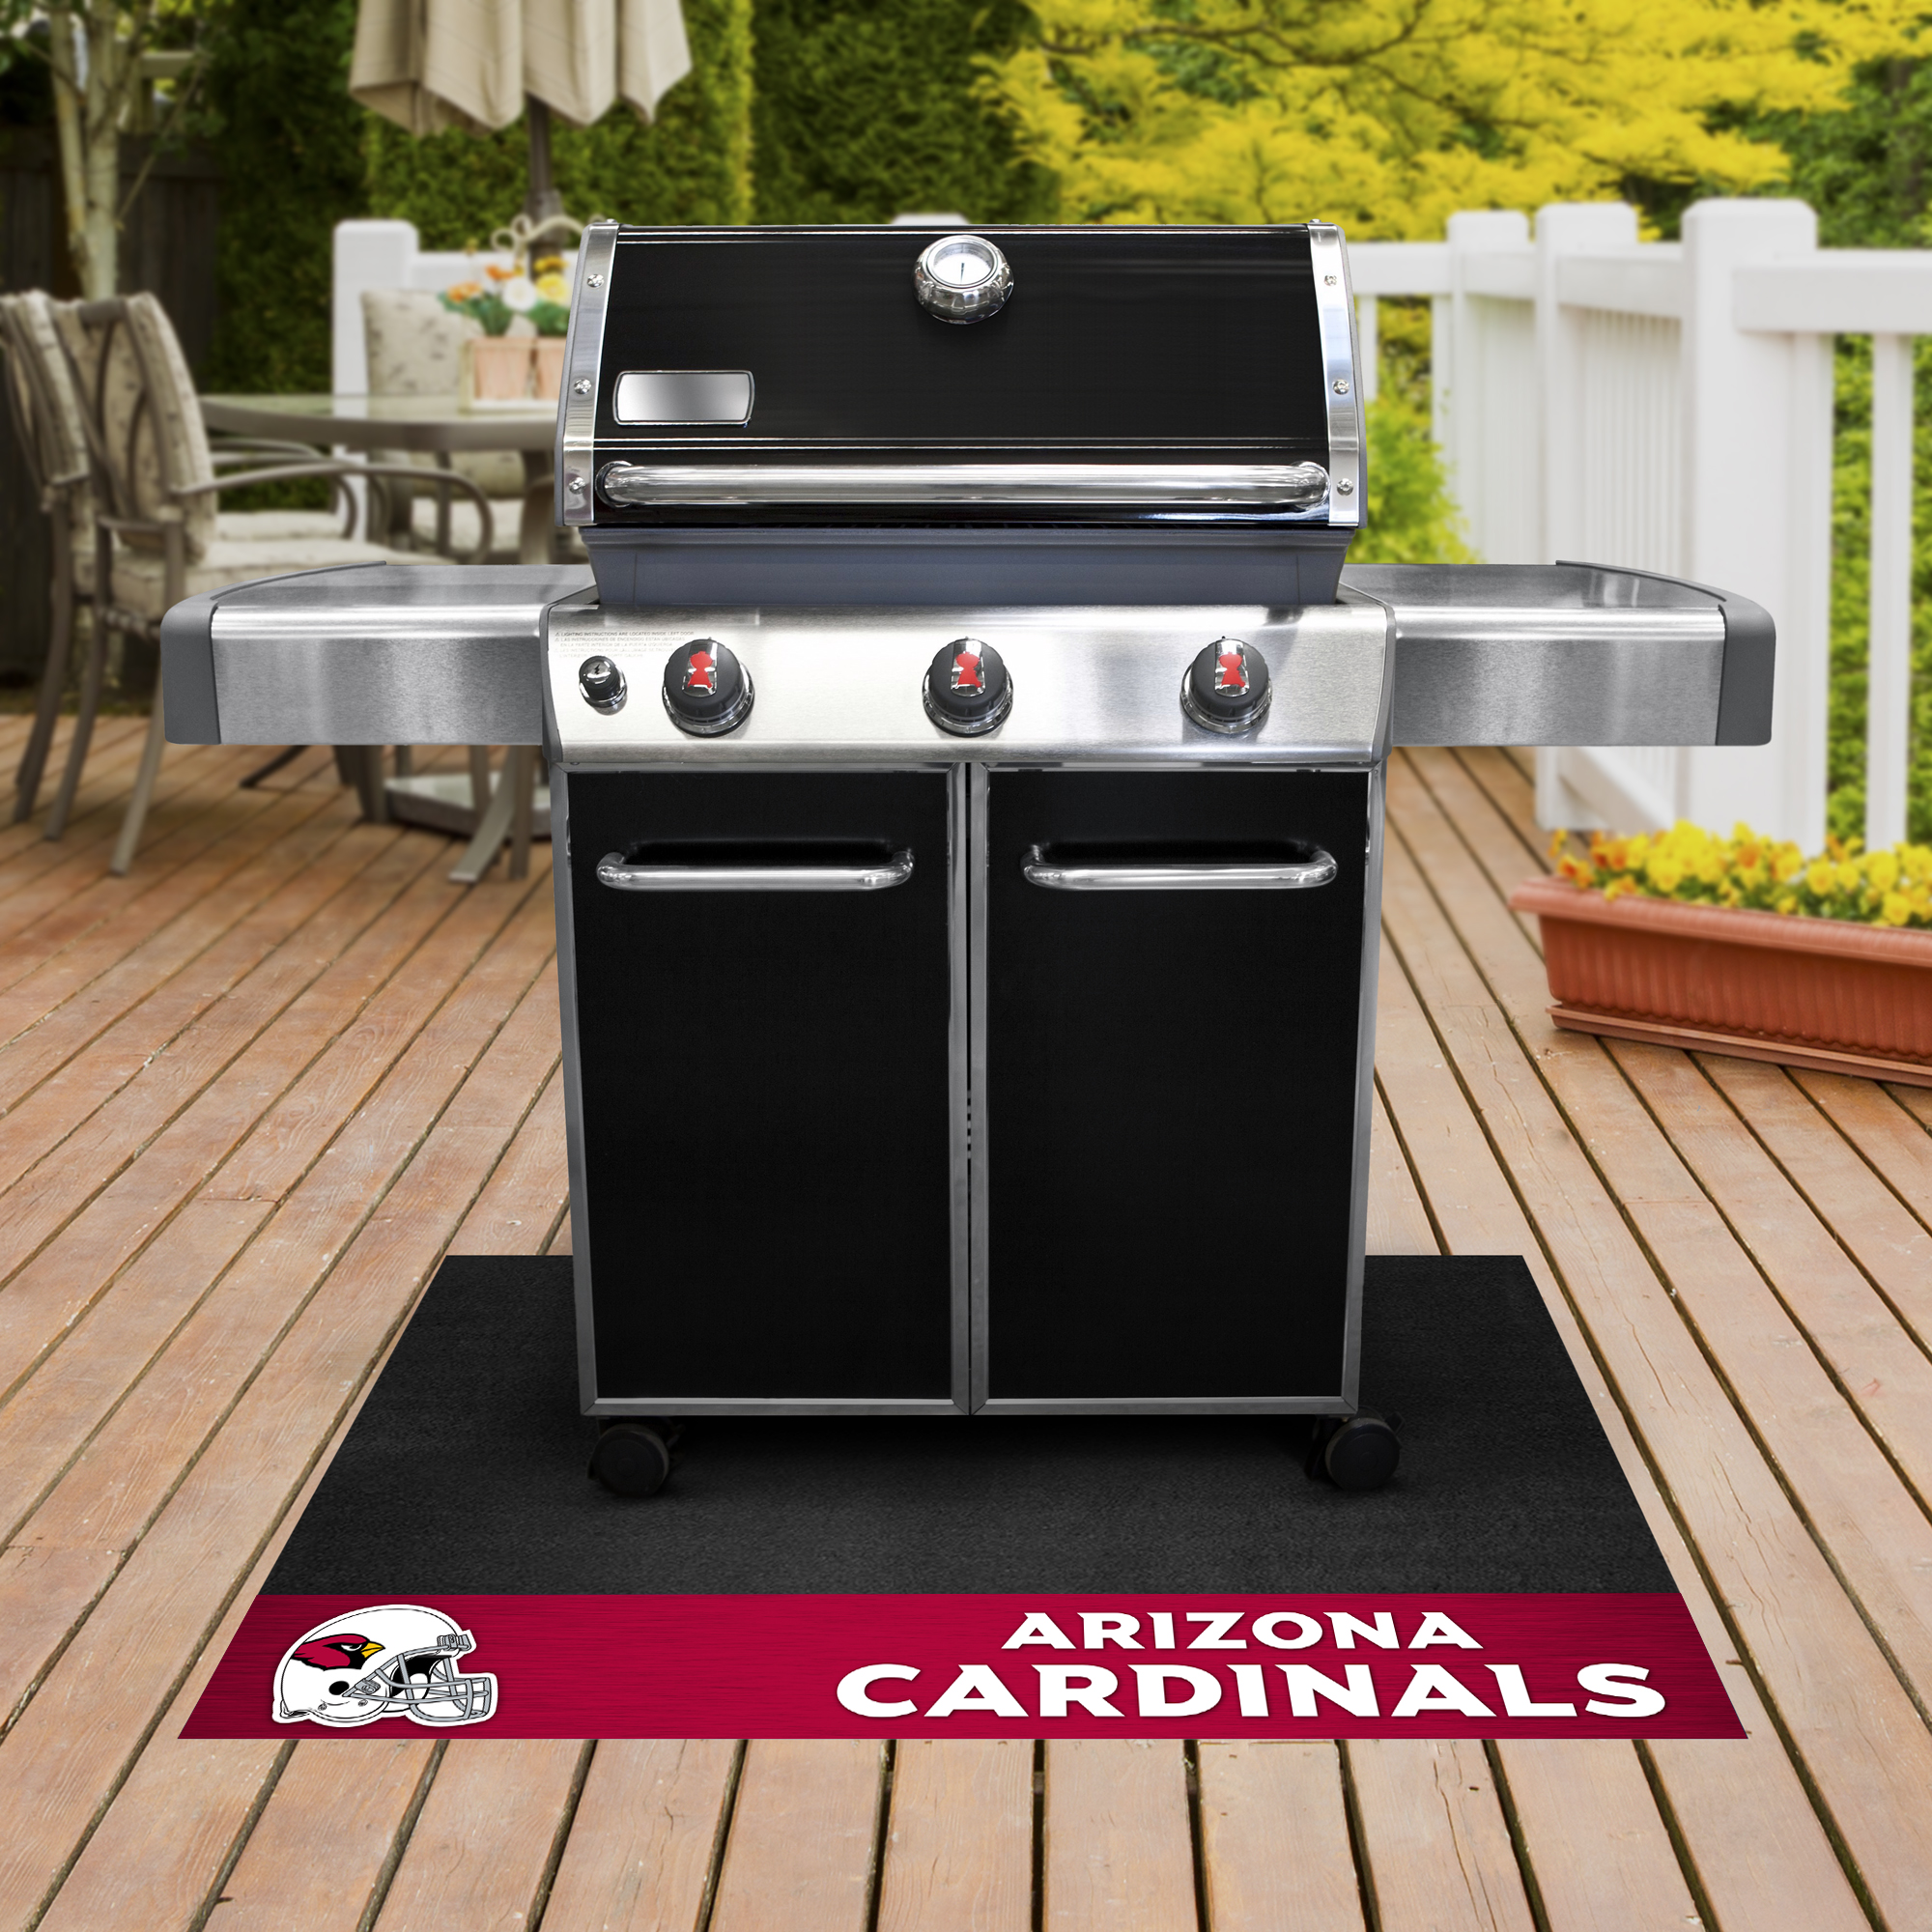 Arizona Cardinals NFL Grill Mat